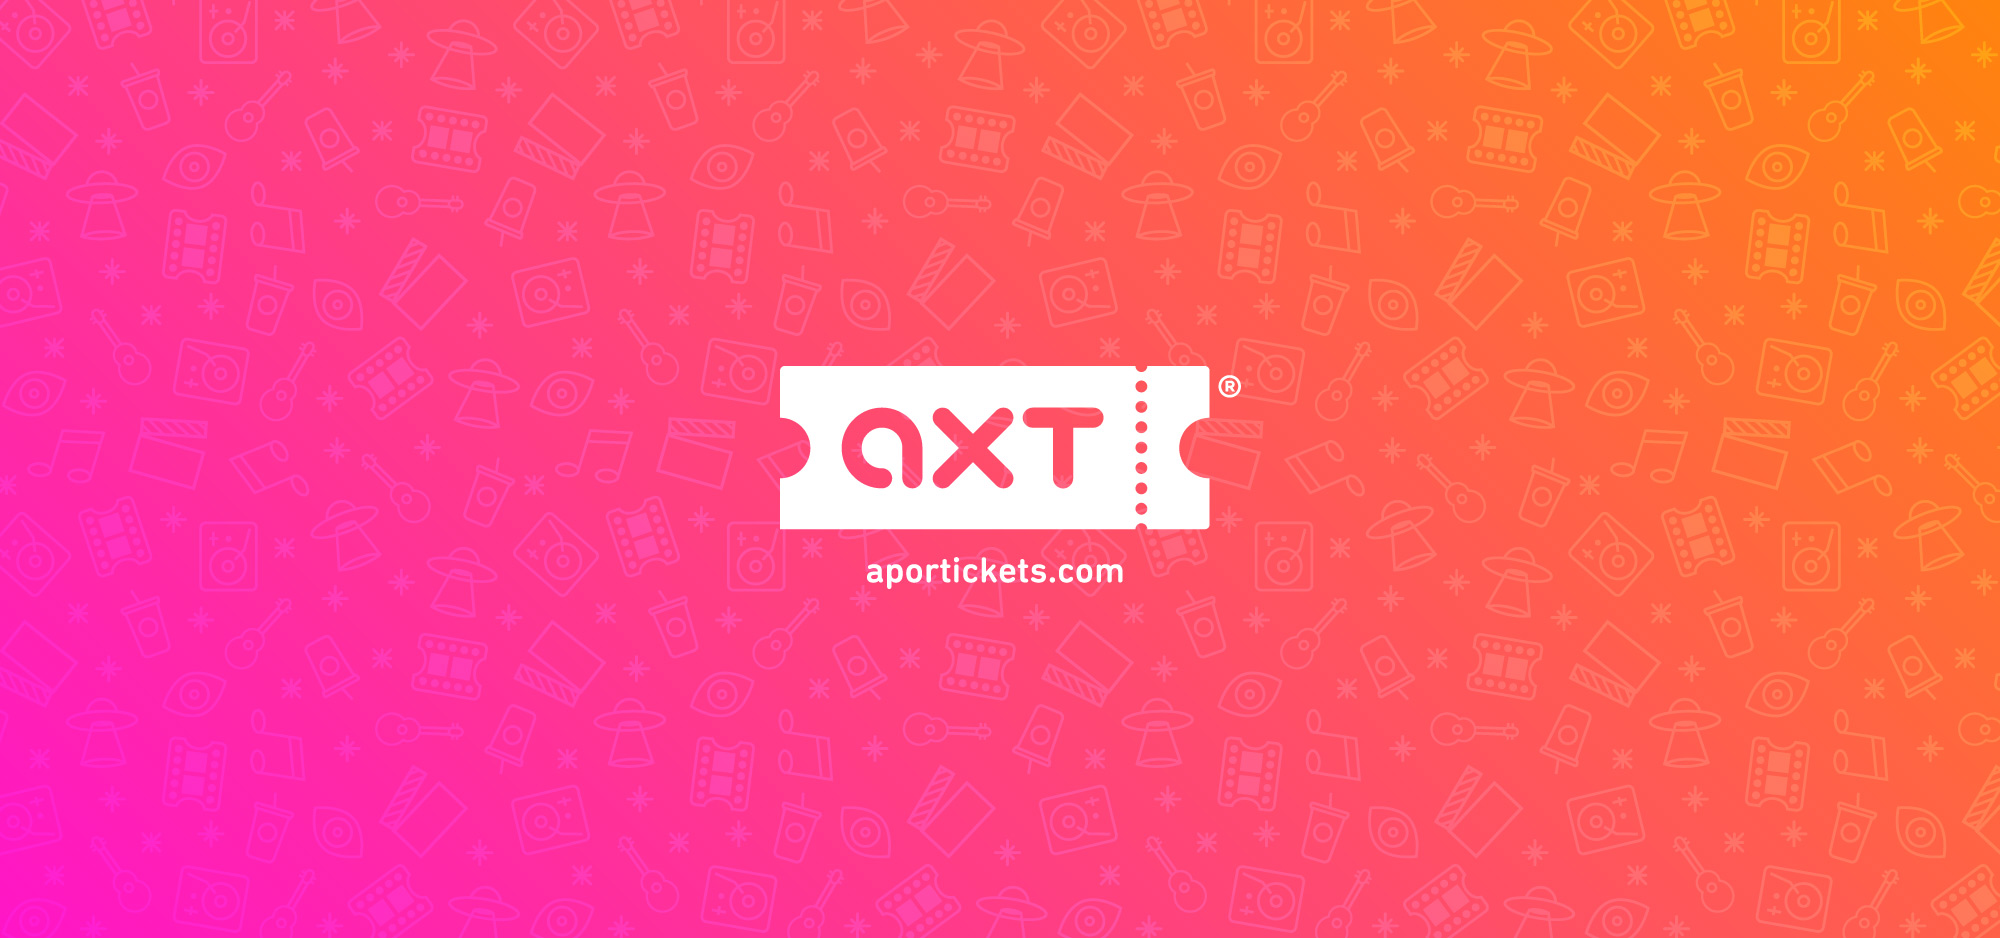 APORTICKETS